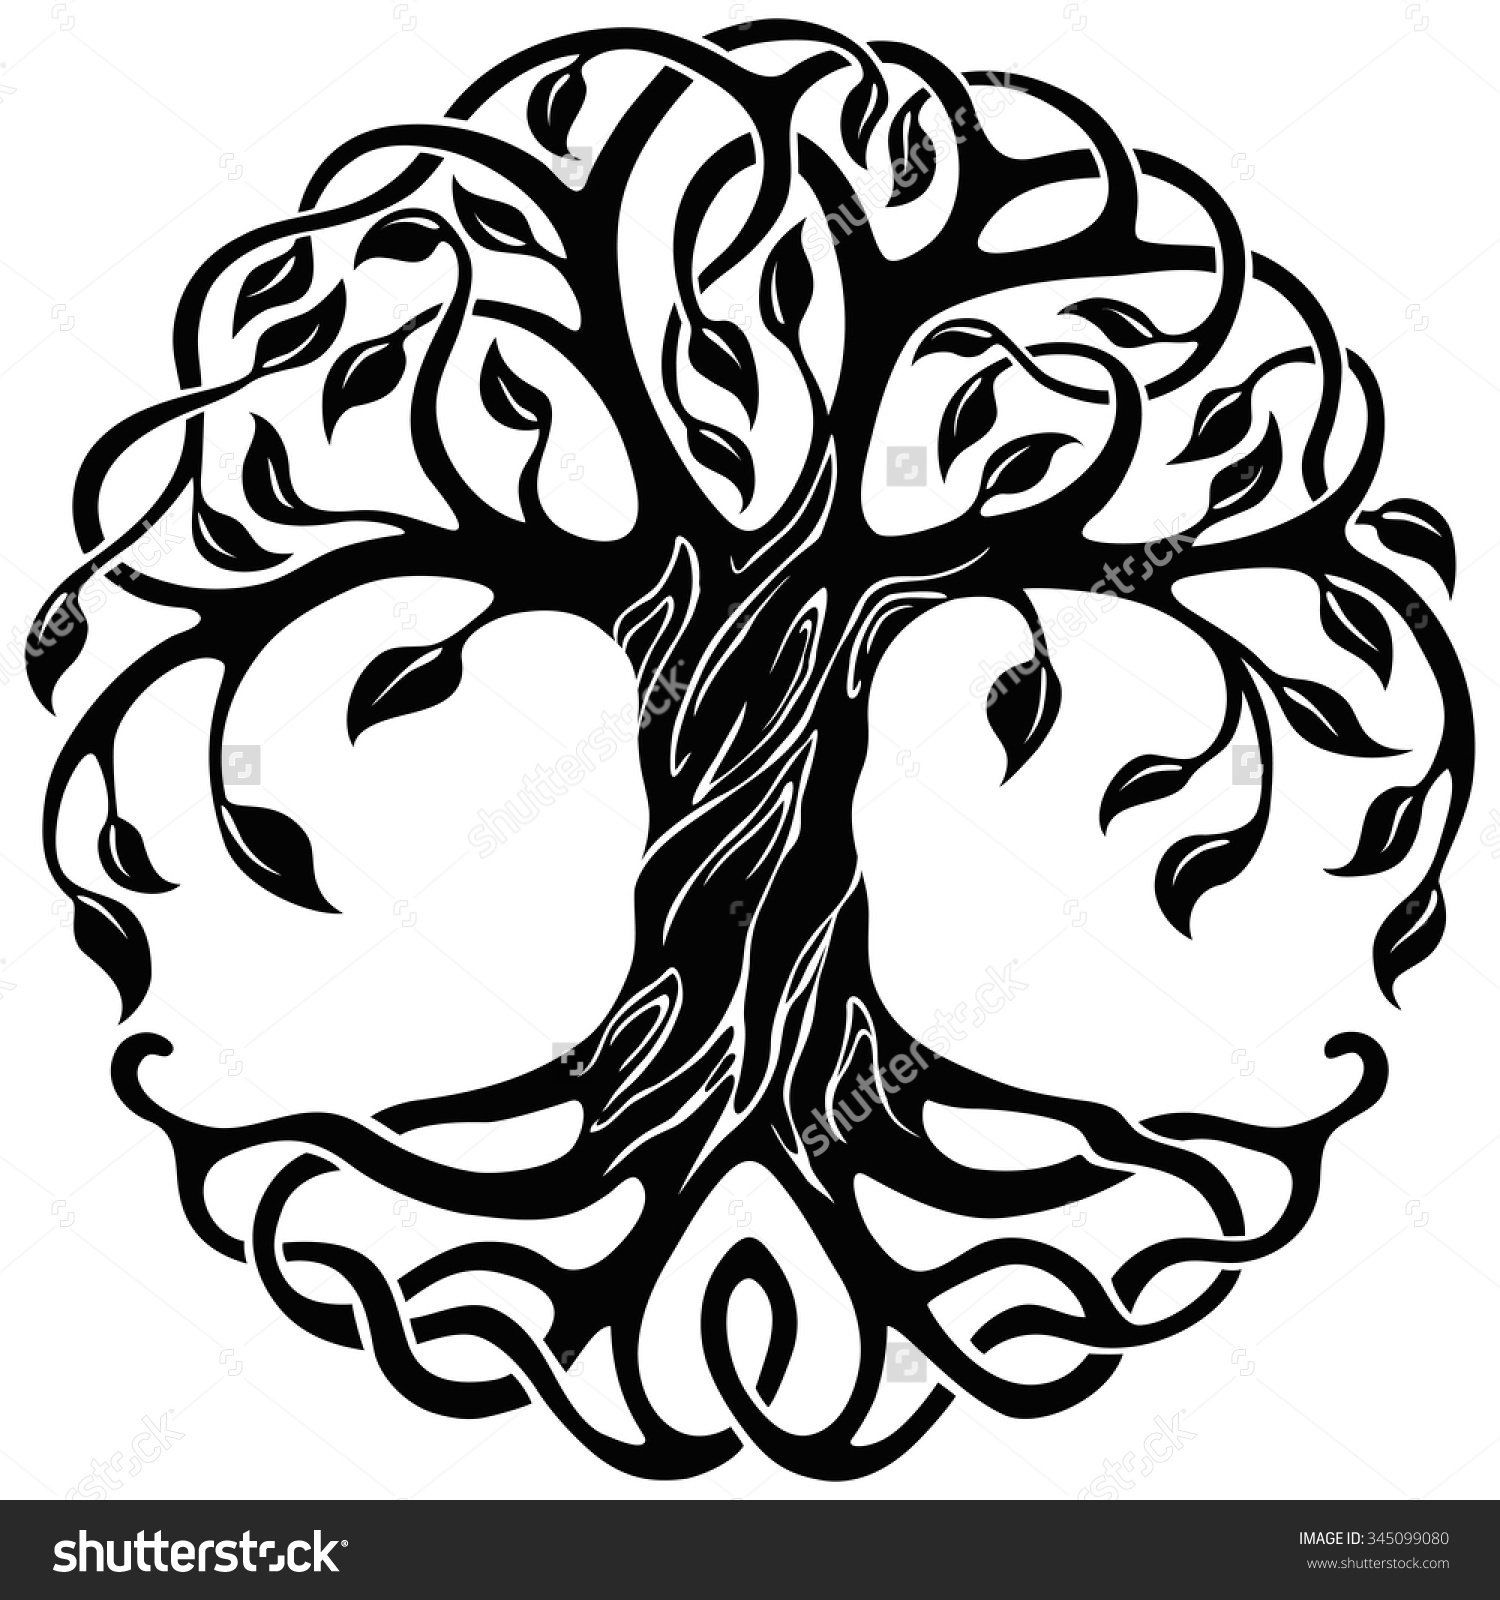 Celt clipart drawing Shutterstock Photos Tree Celtic Pictures